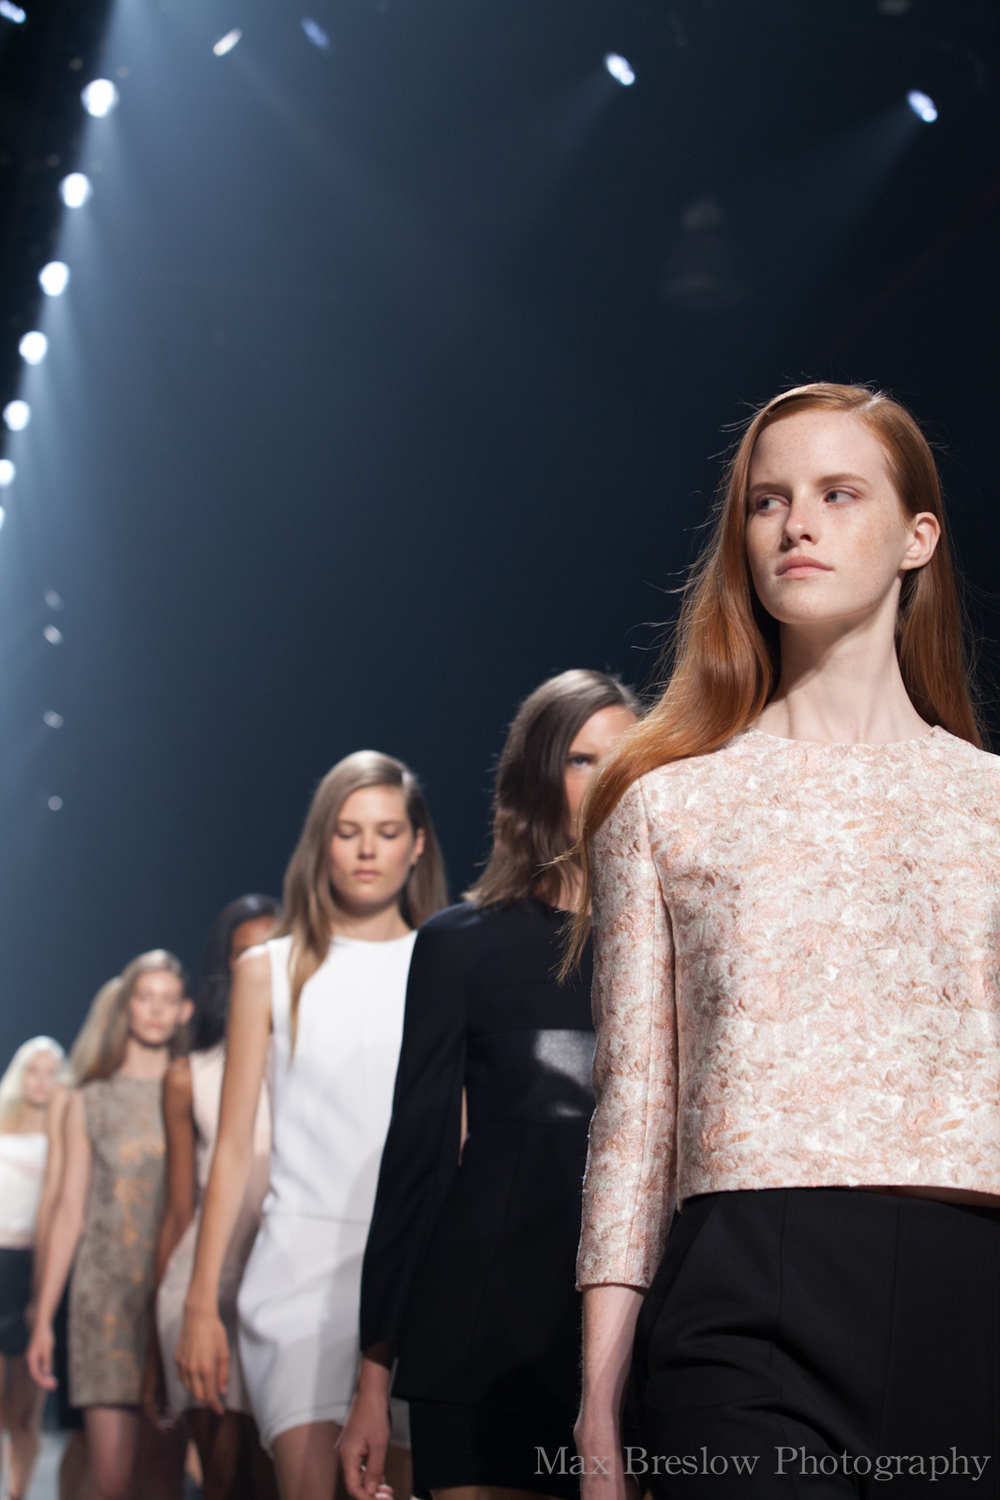 NARCISO RODRIGUEZ - SPRING 2014 SHOW